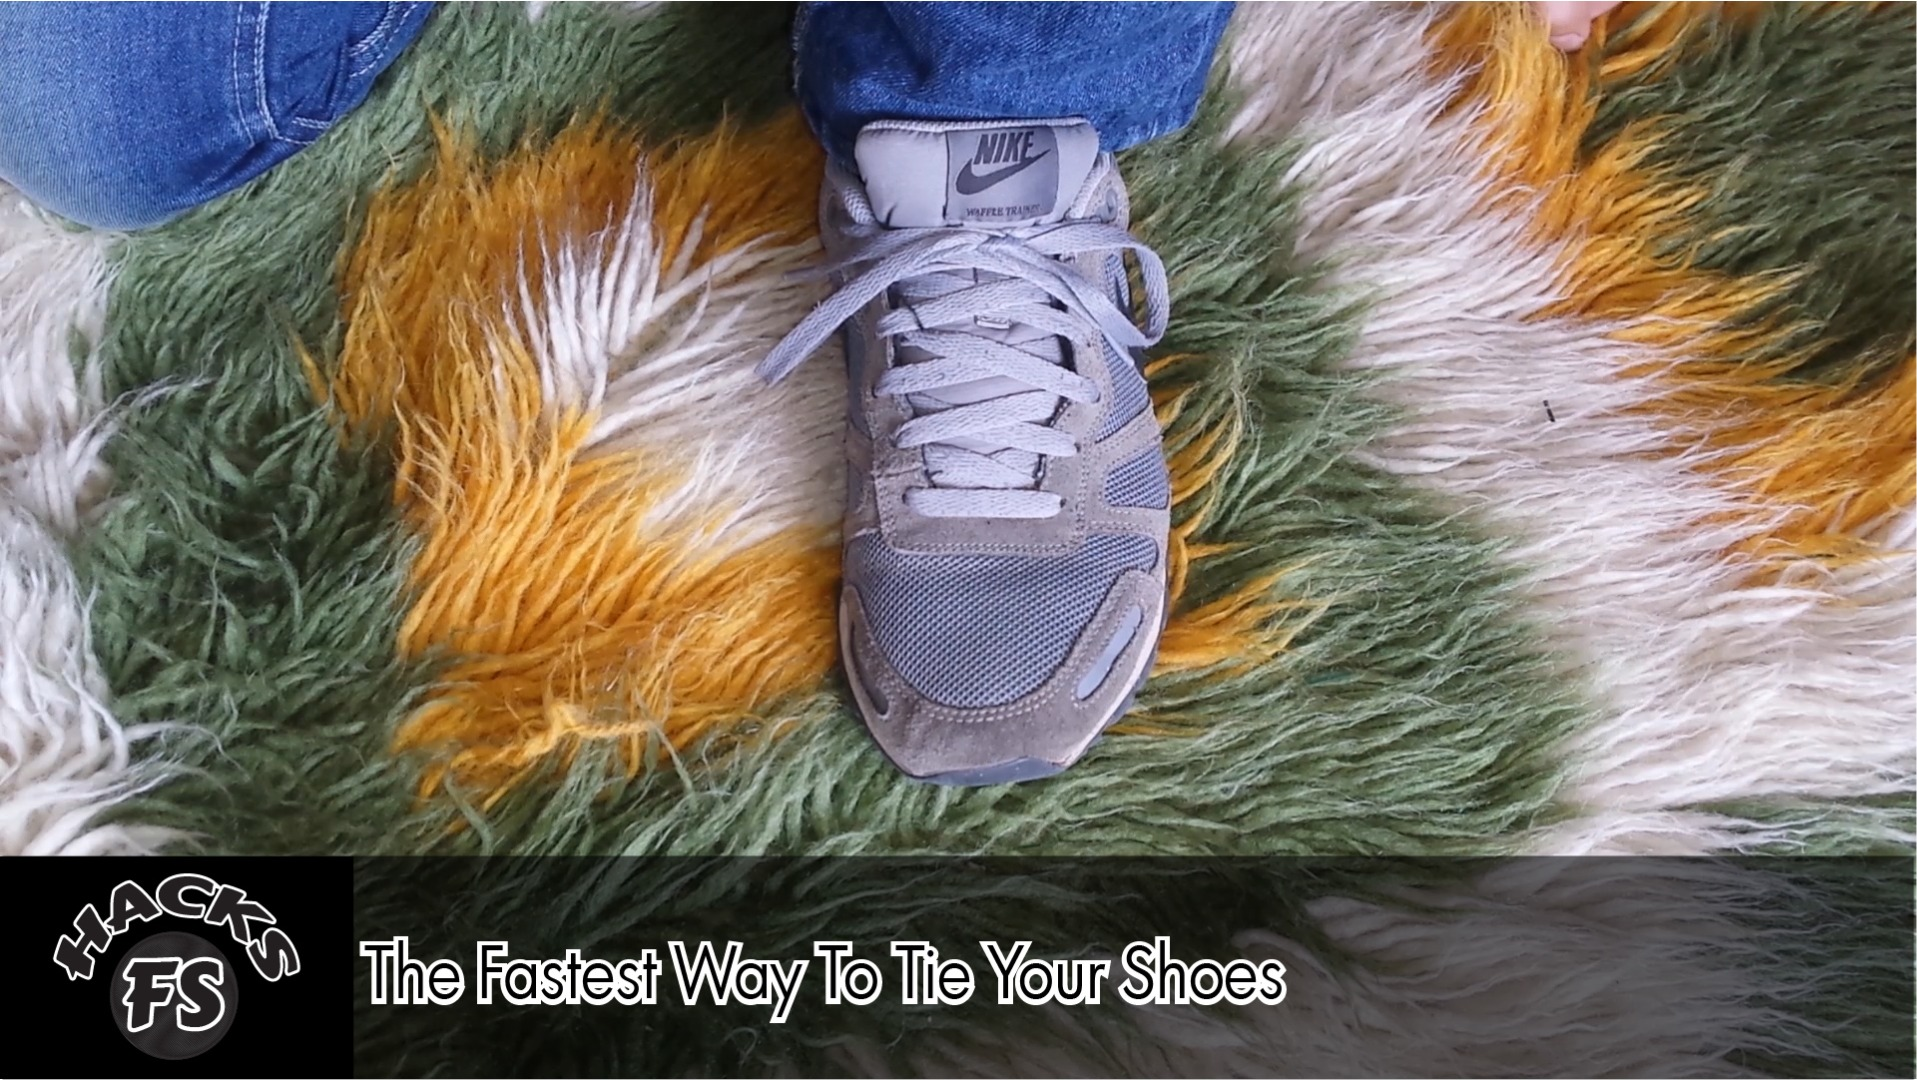 Picture of The Fastest Way to Tie Your Shoes